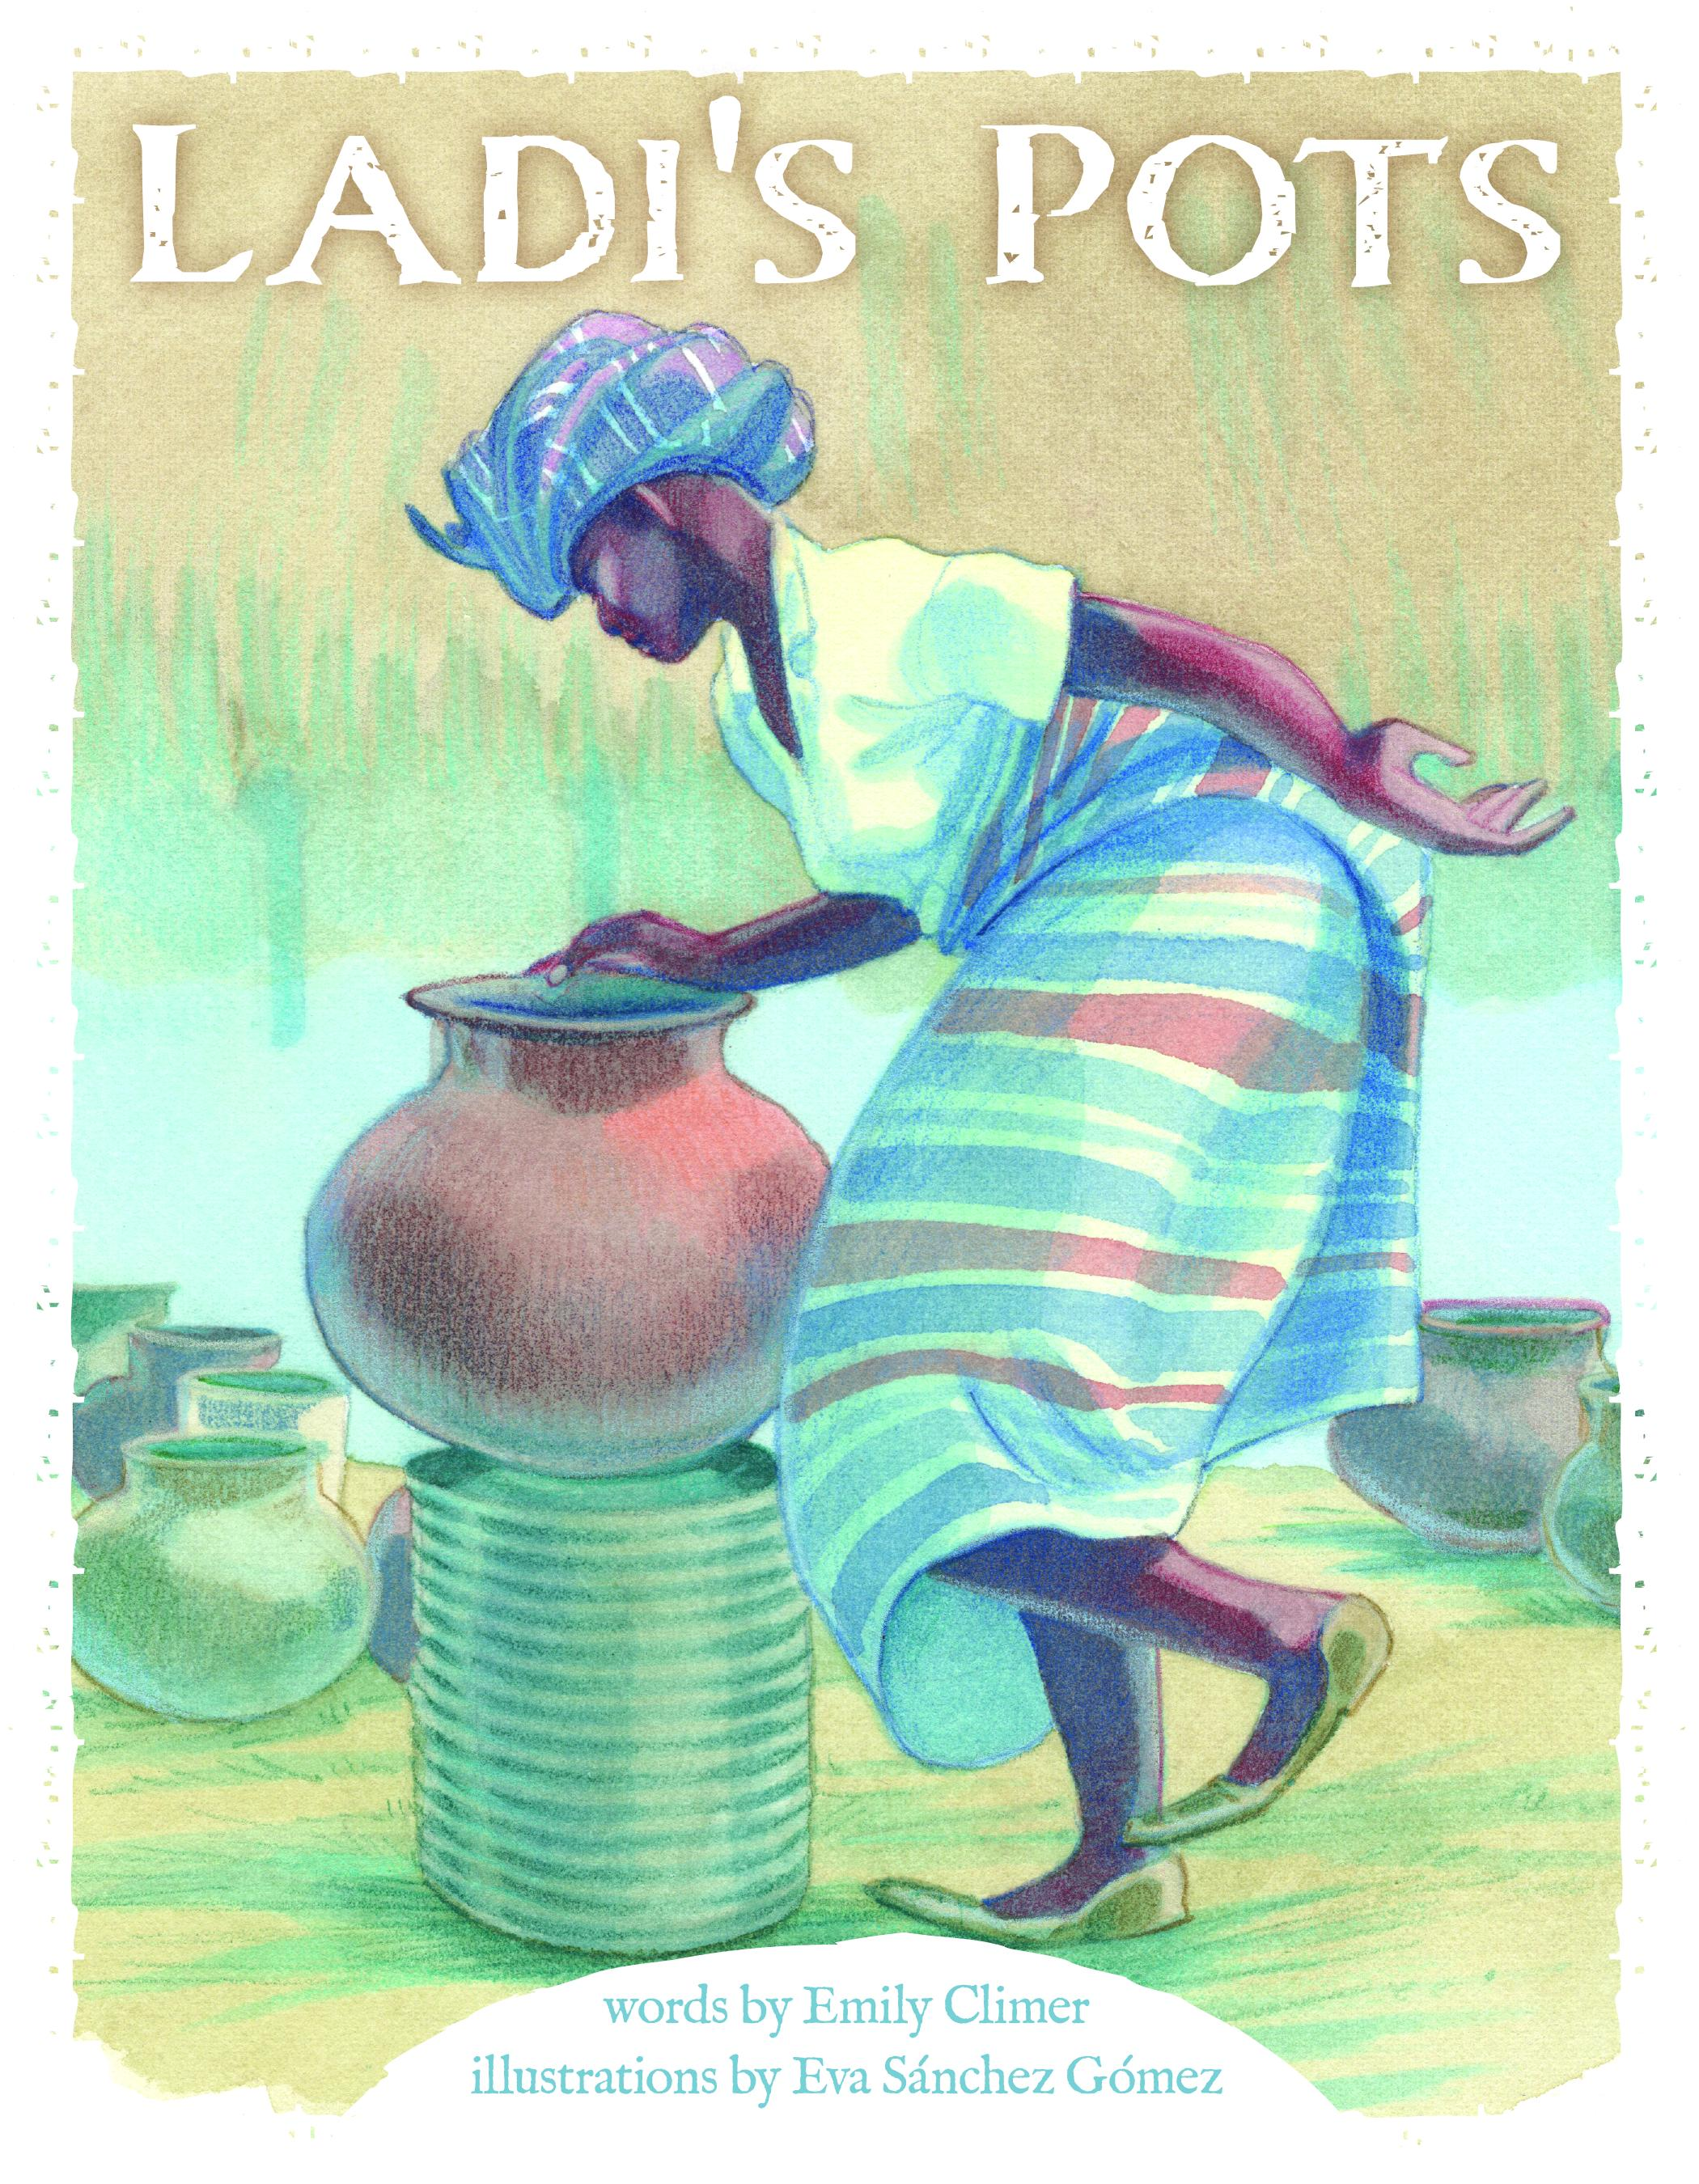 Ladi's Pots book cover showing a woman dancing with a round clay pot.